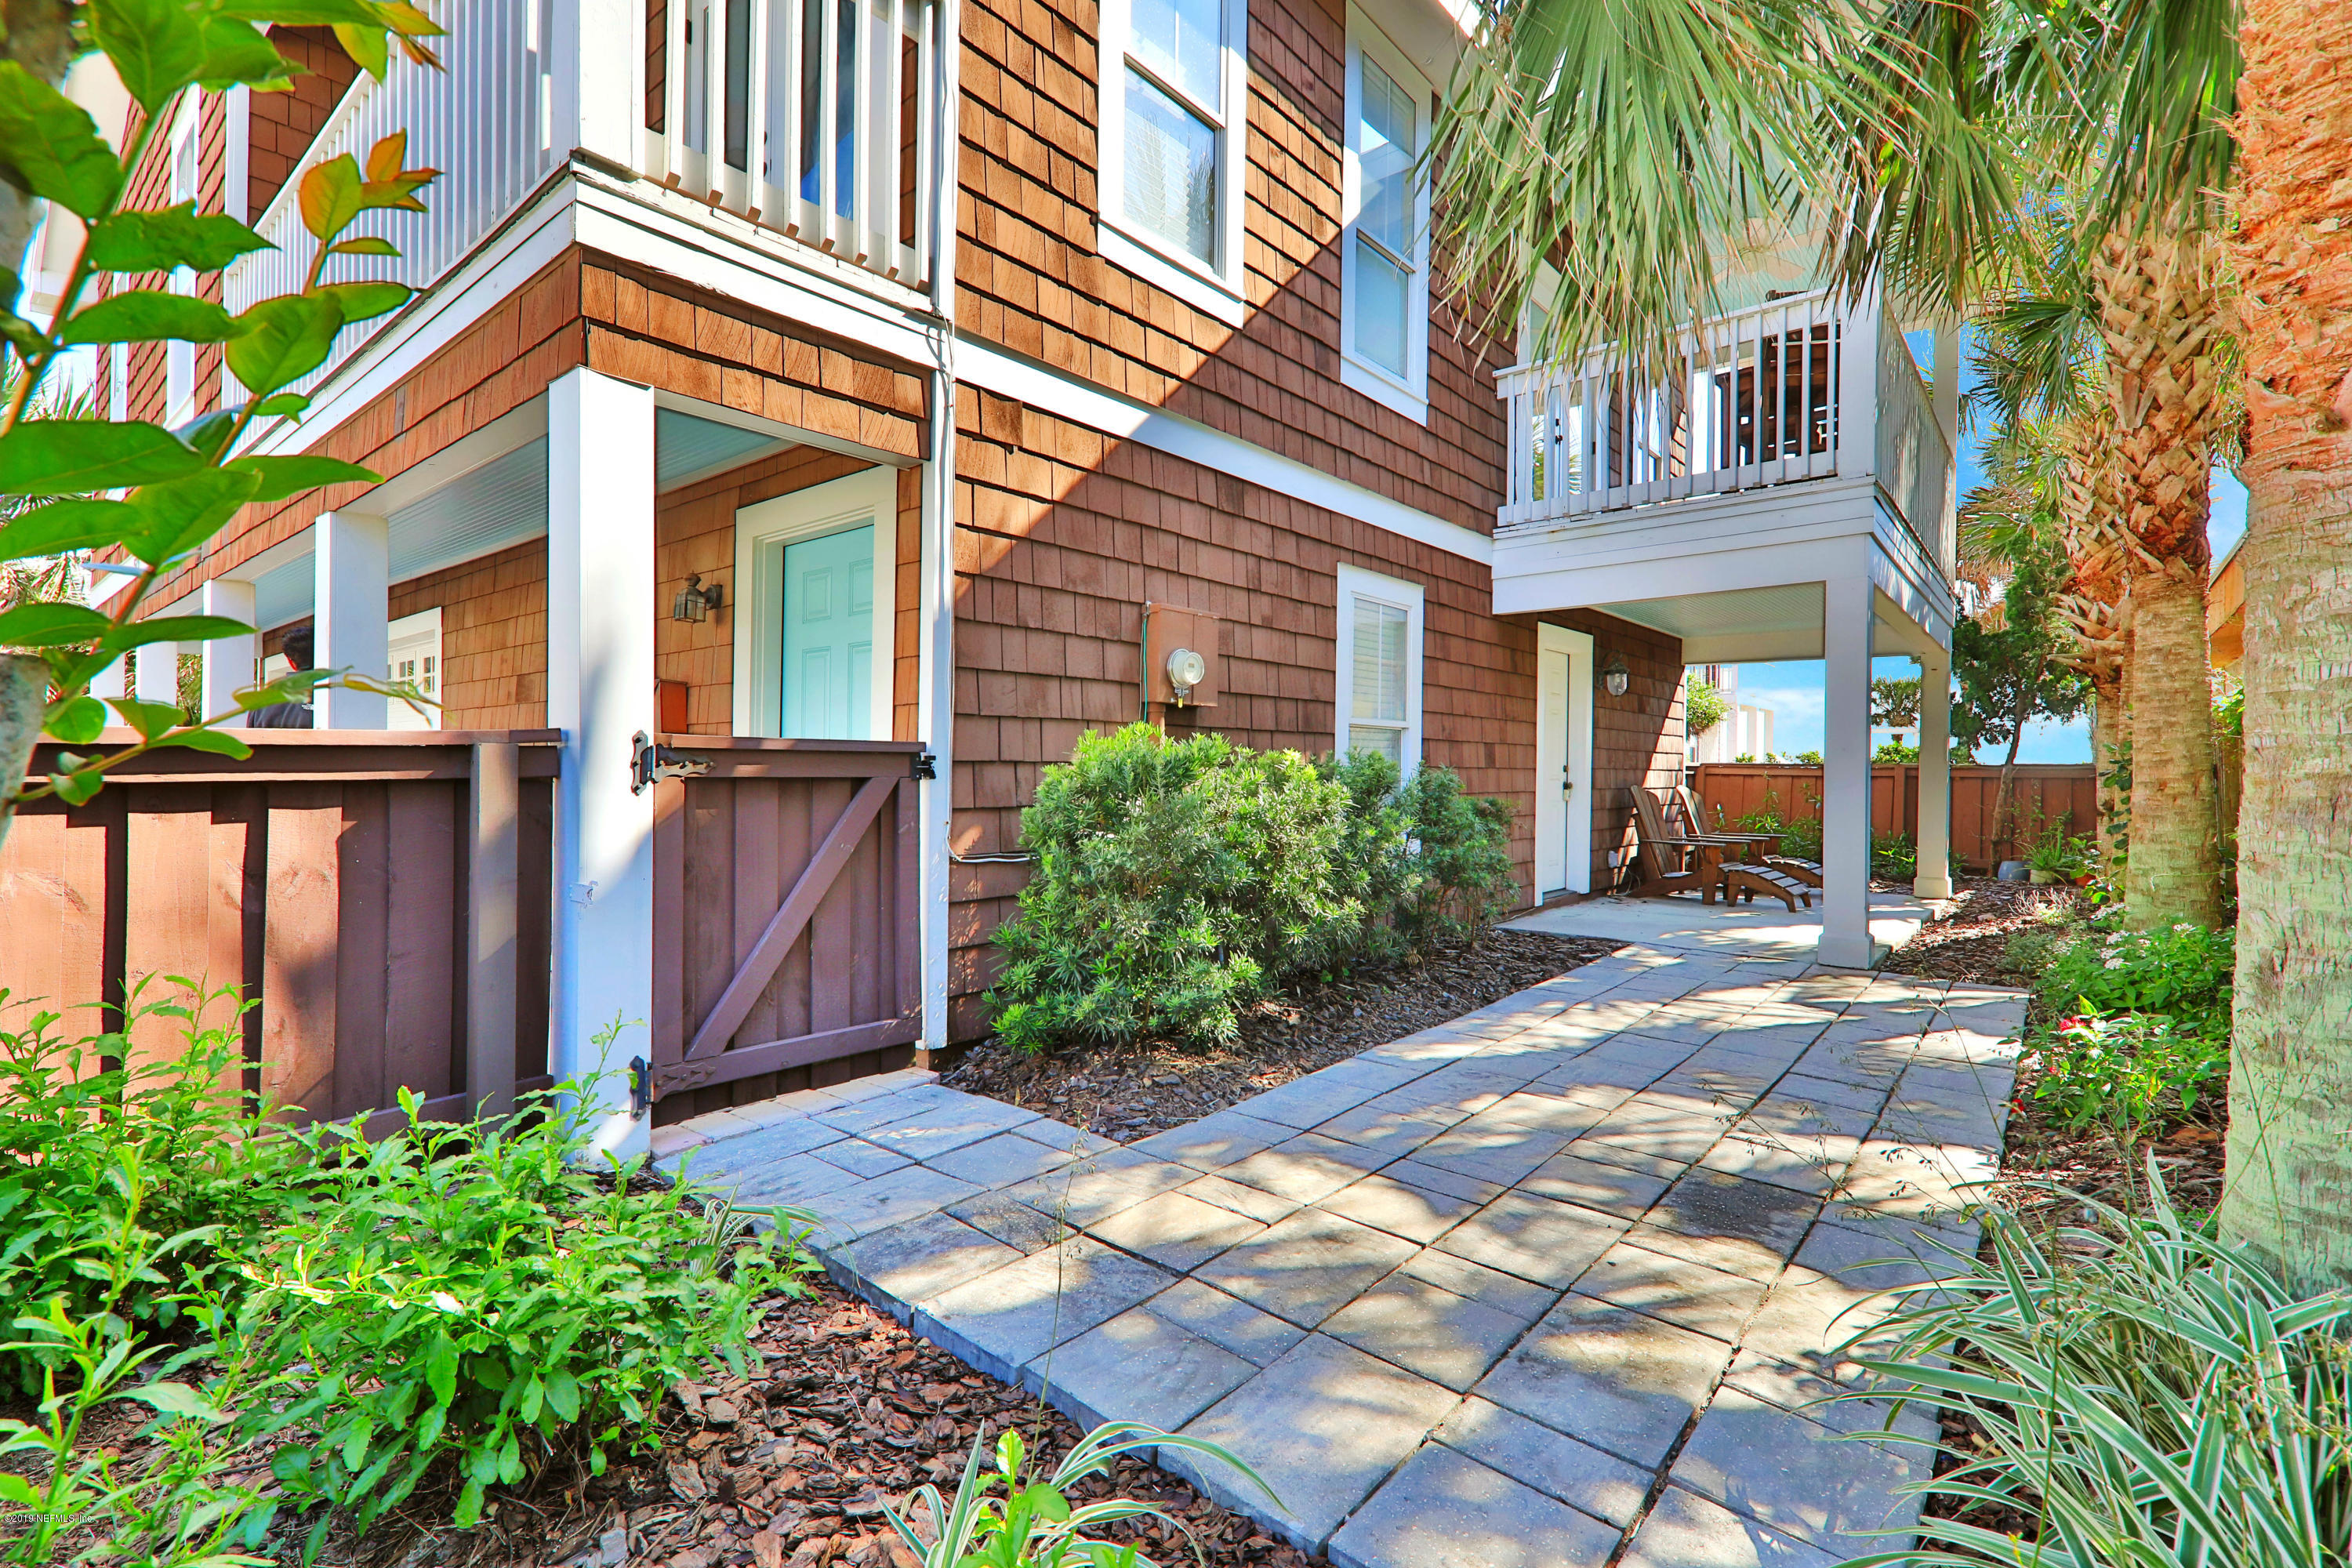 519 MIDWAY, NEPTUNE BEACH, FLORIDA 32266, 2 Bedrooms Bedrooms, ,2 BathroomsBathrooms,Residential - single family,For sale,MIDWAY,987250